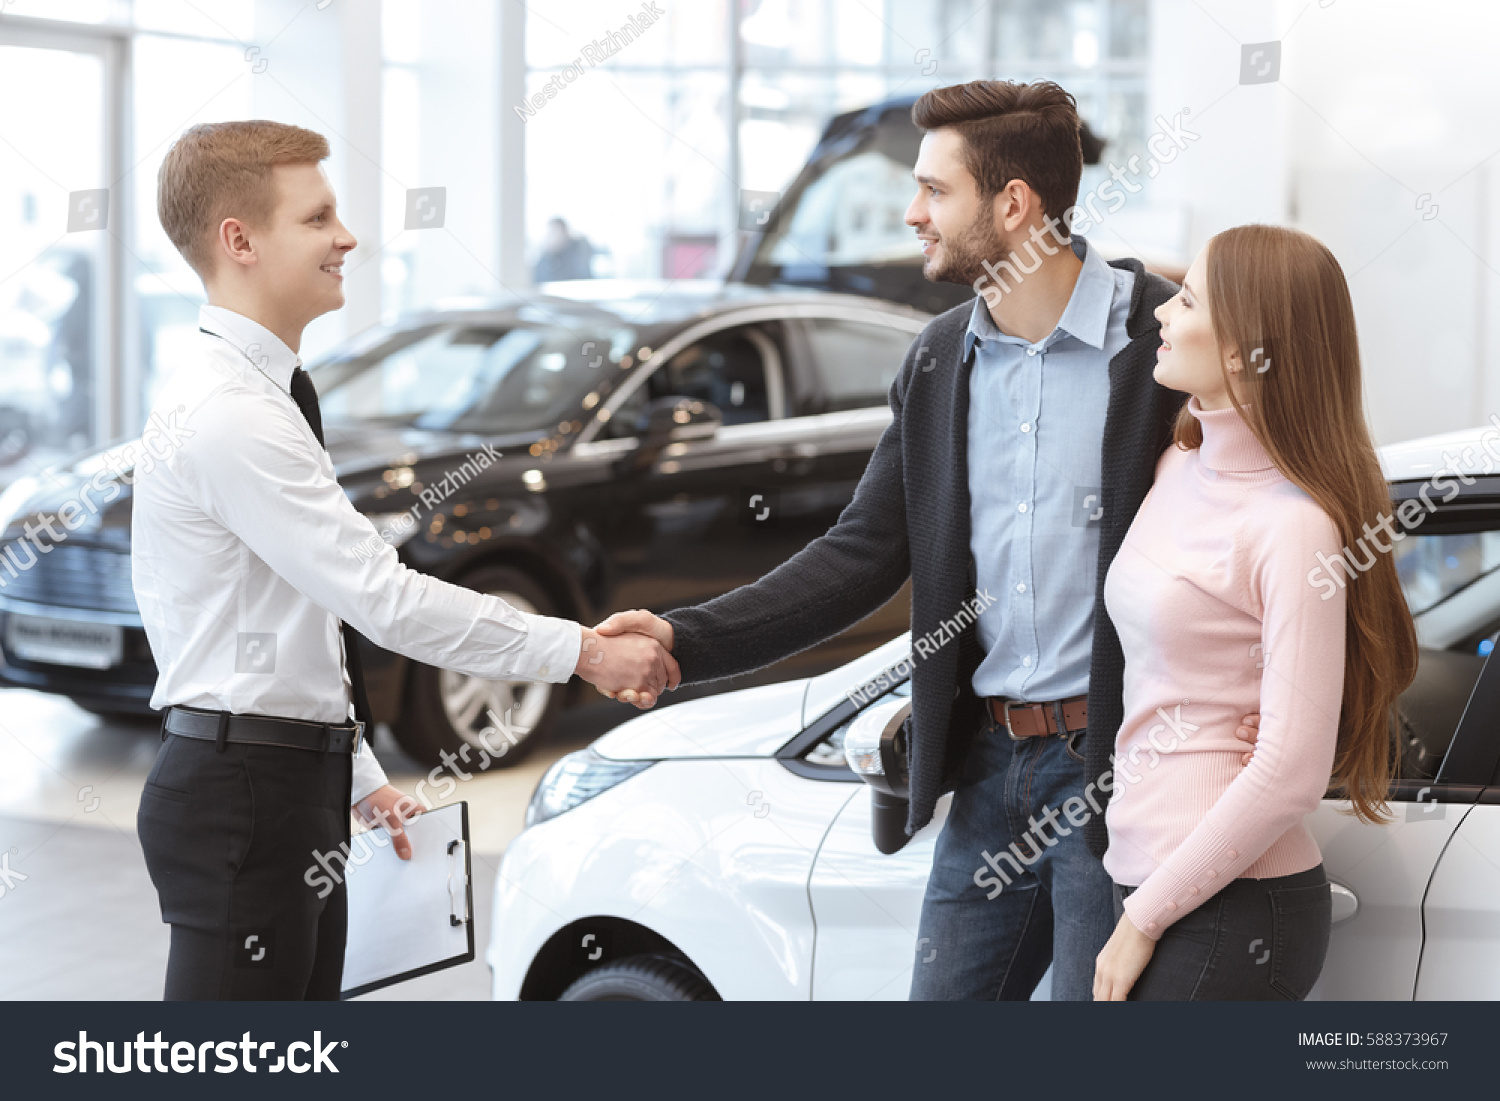 Buying A New Car Congrats Your New Car Happy Young Stock Photo Edit Now 588373967